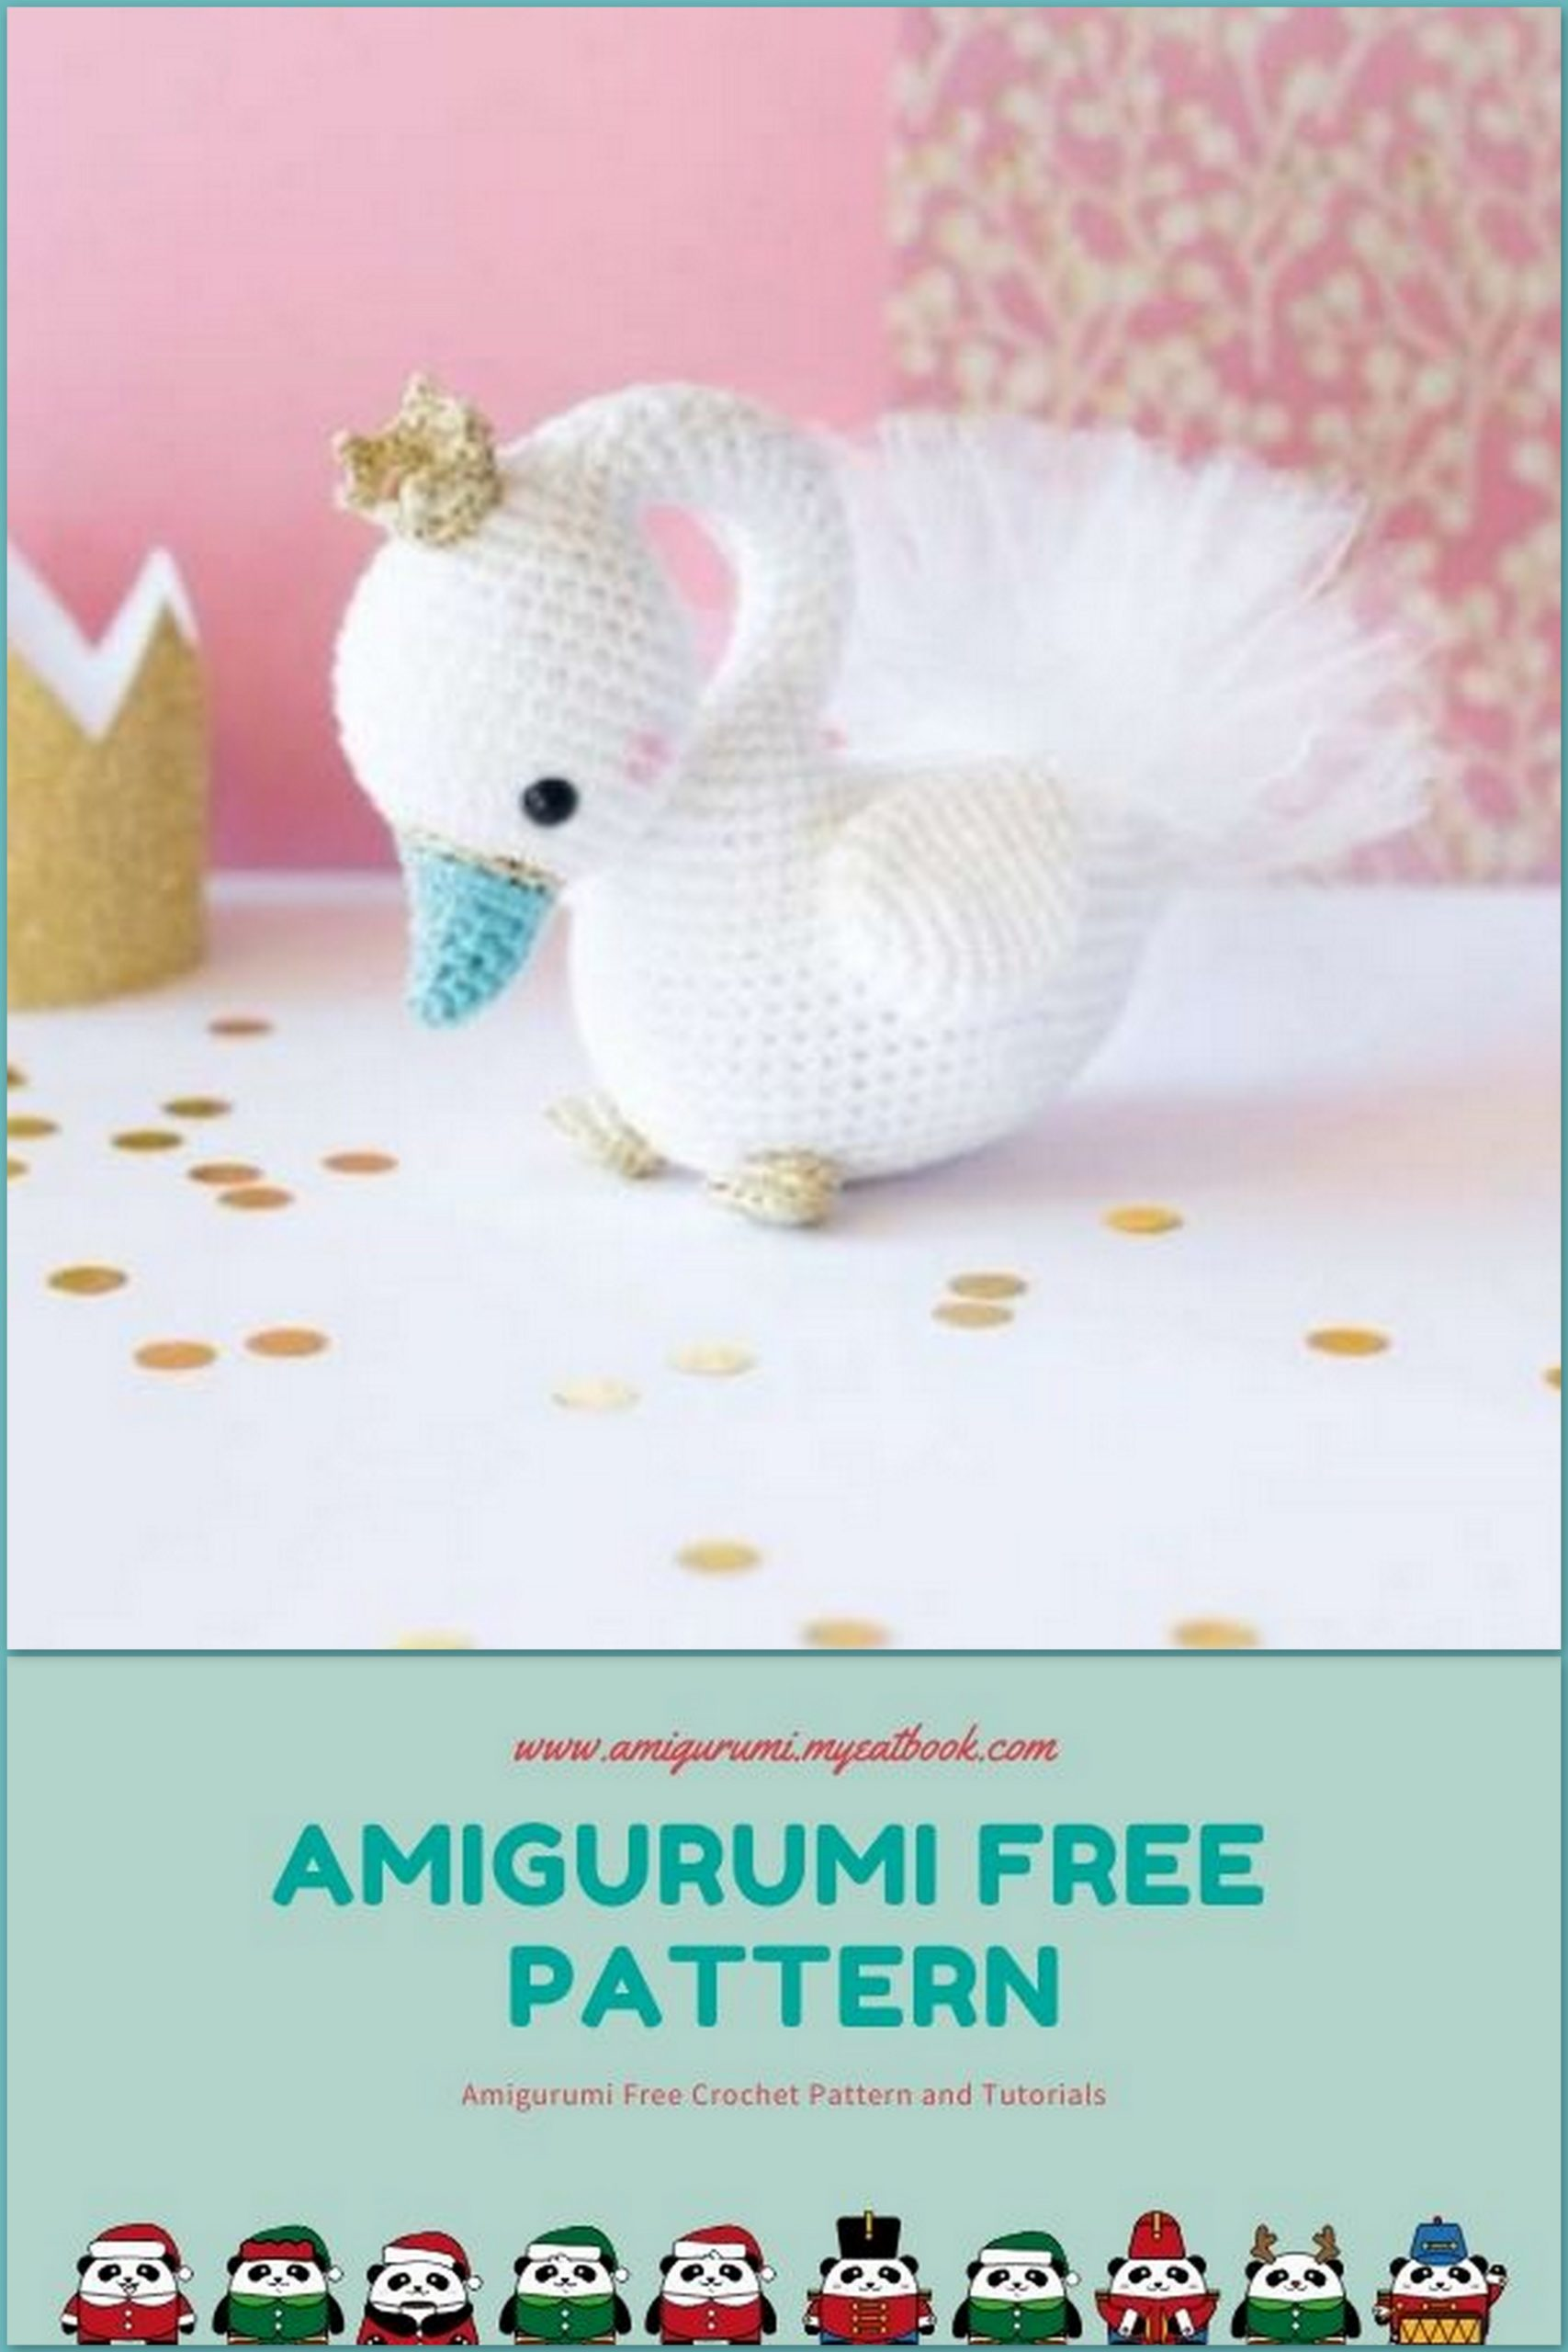 6 Free Amigurumi Duck Crochet Patterns | 2560x1707